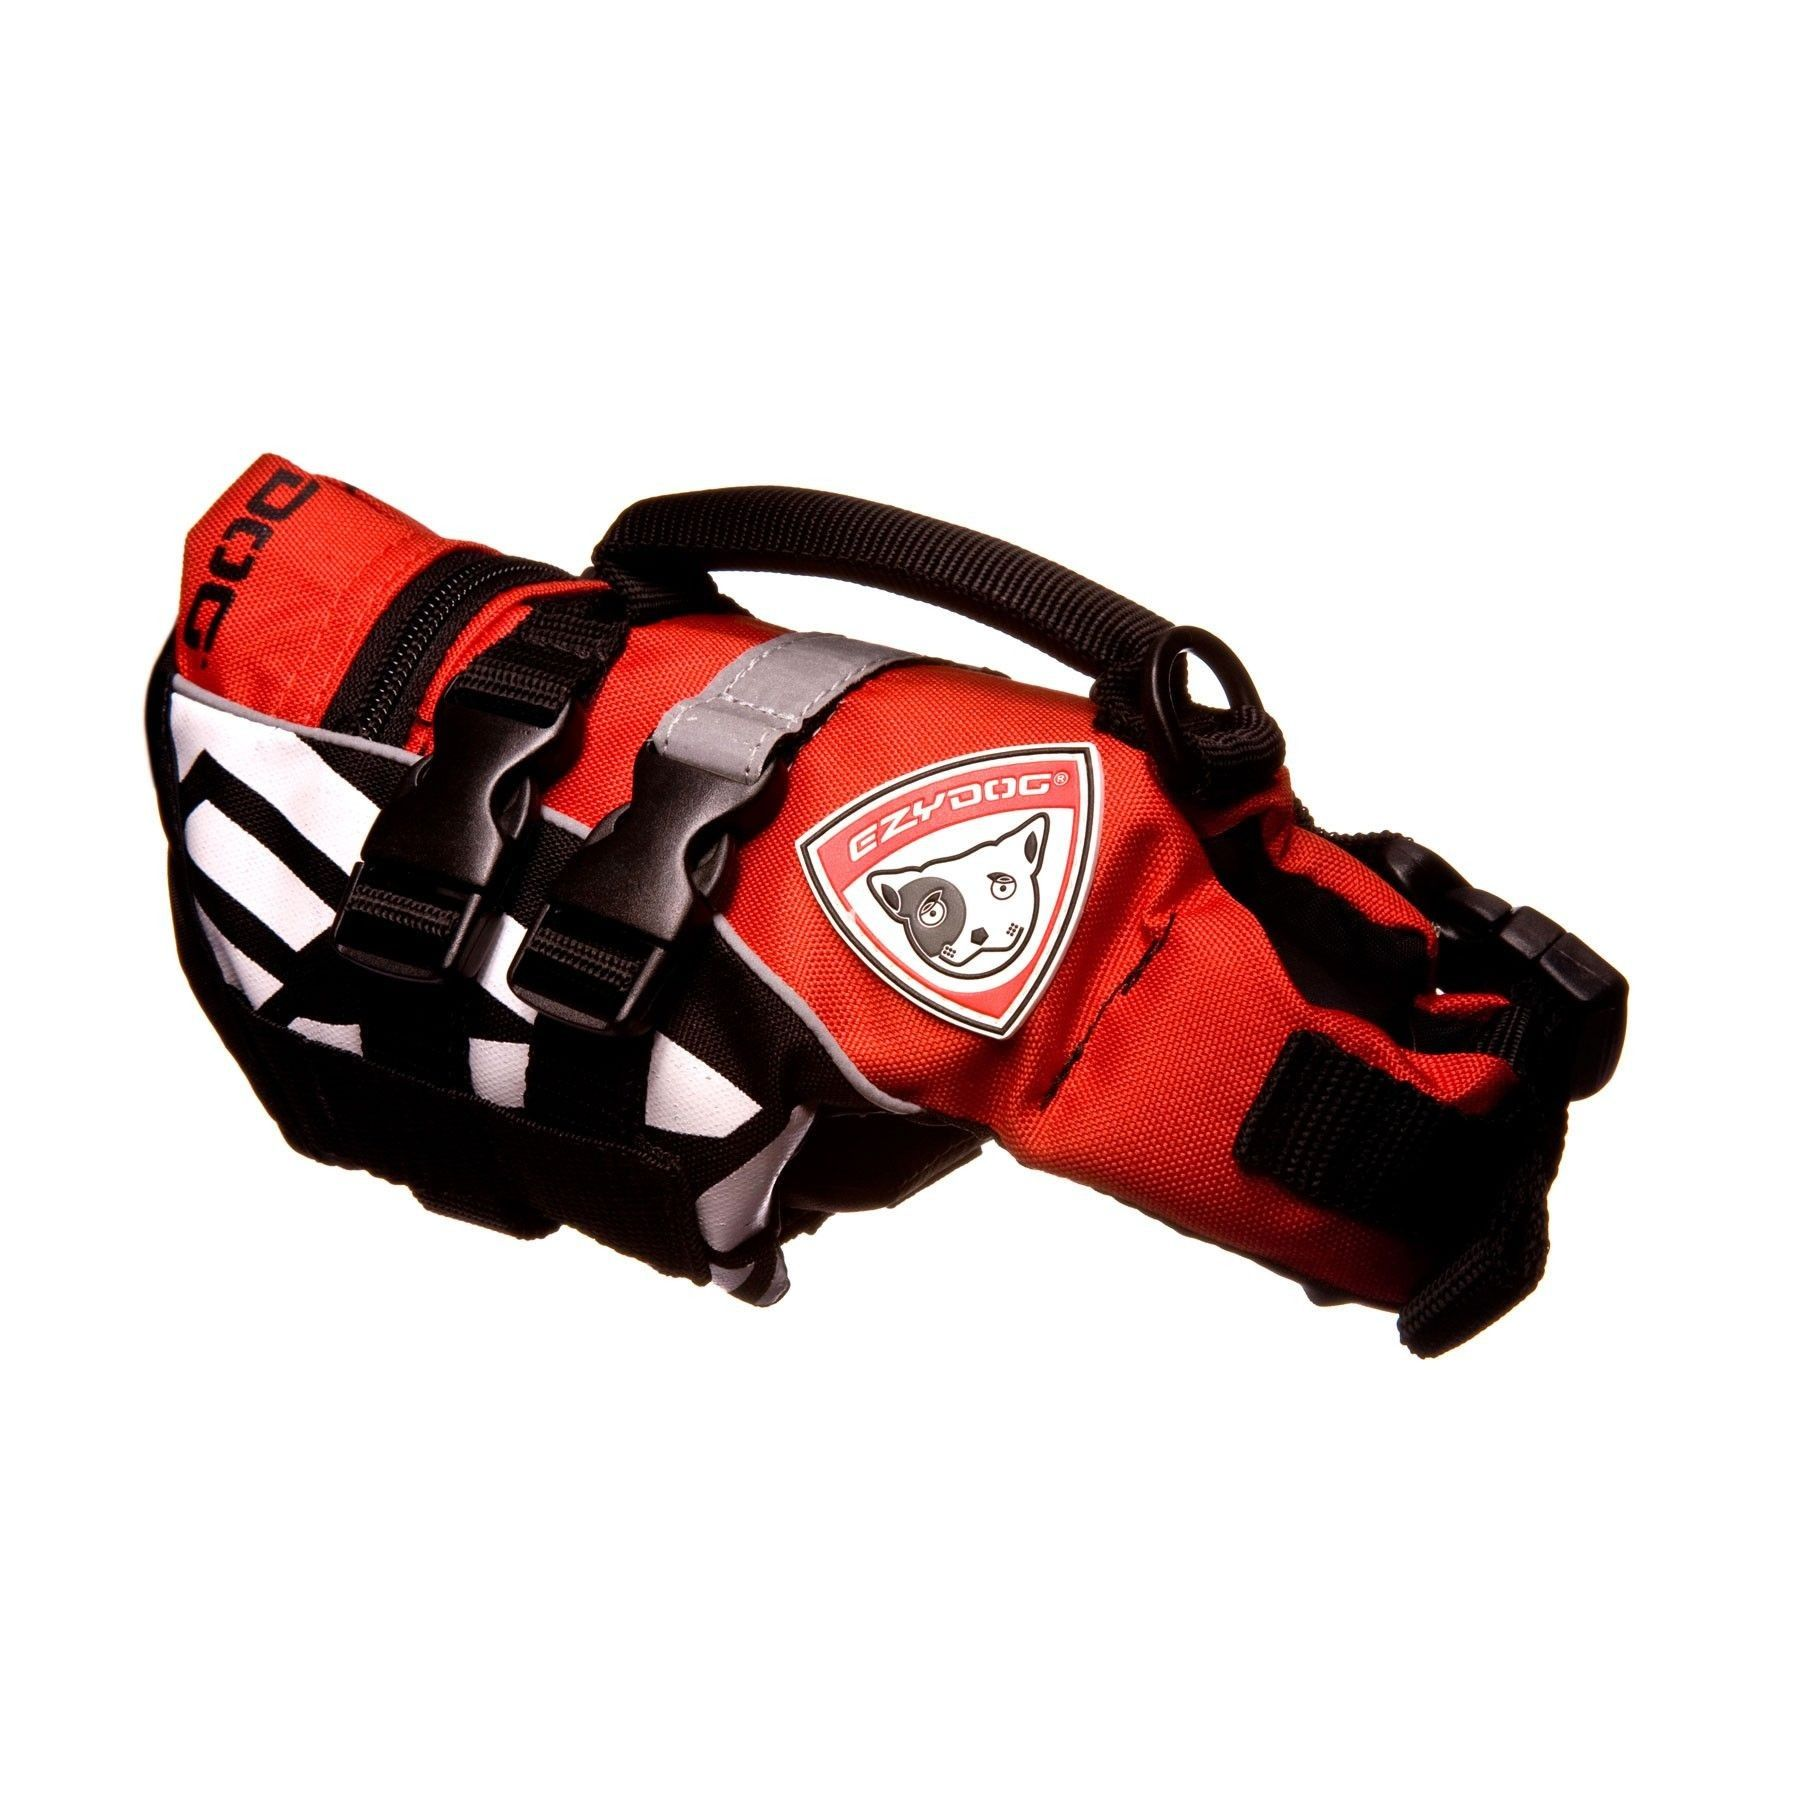 Micro DFD Dog Life Jacket